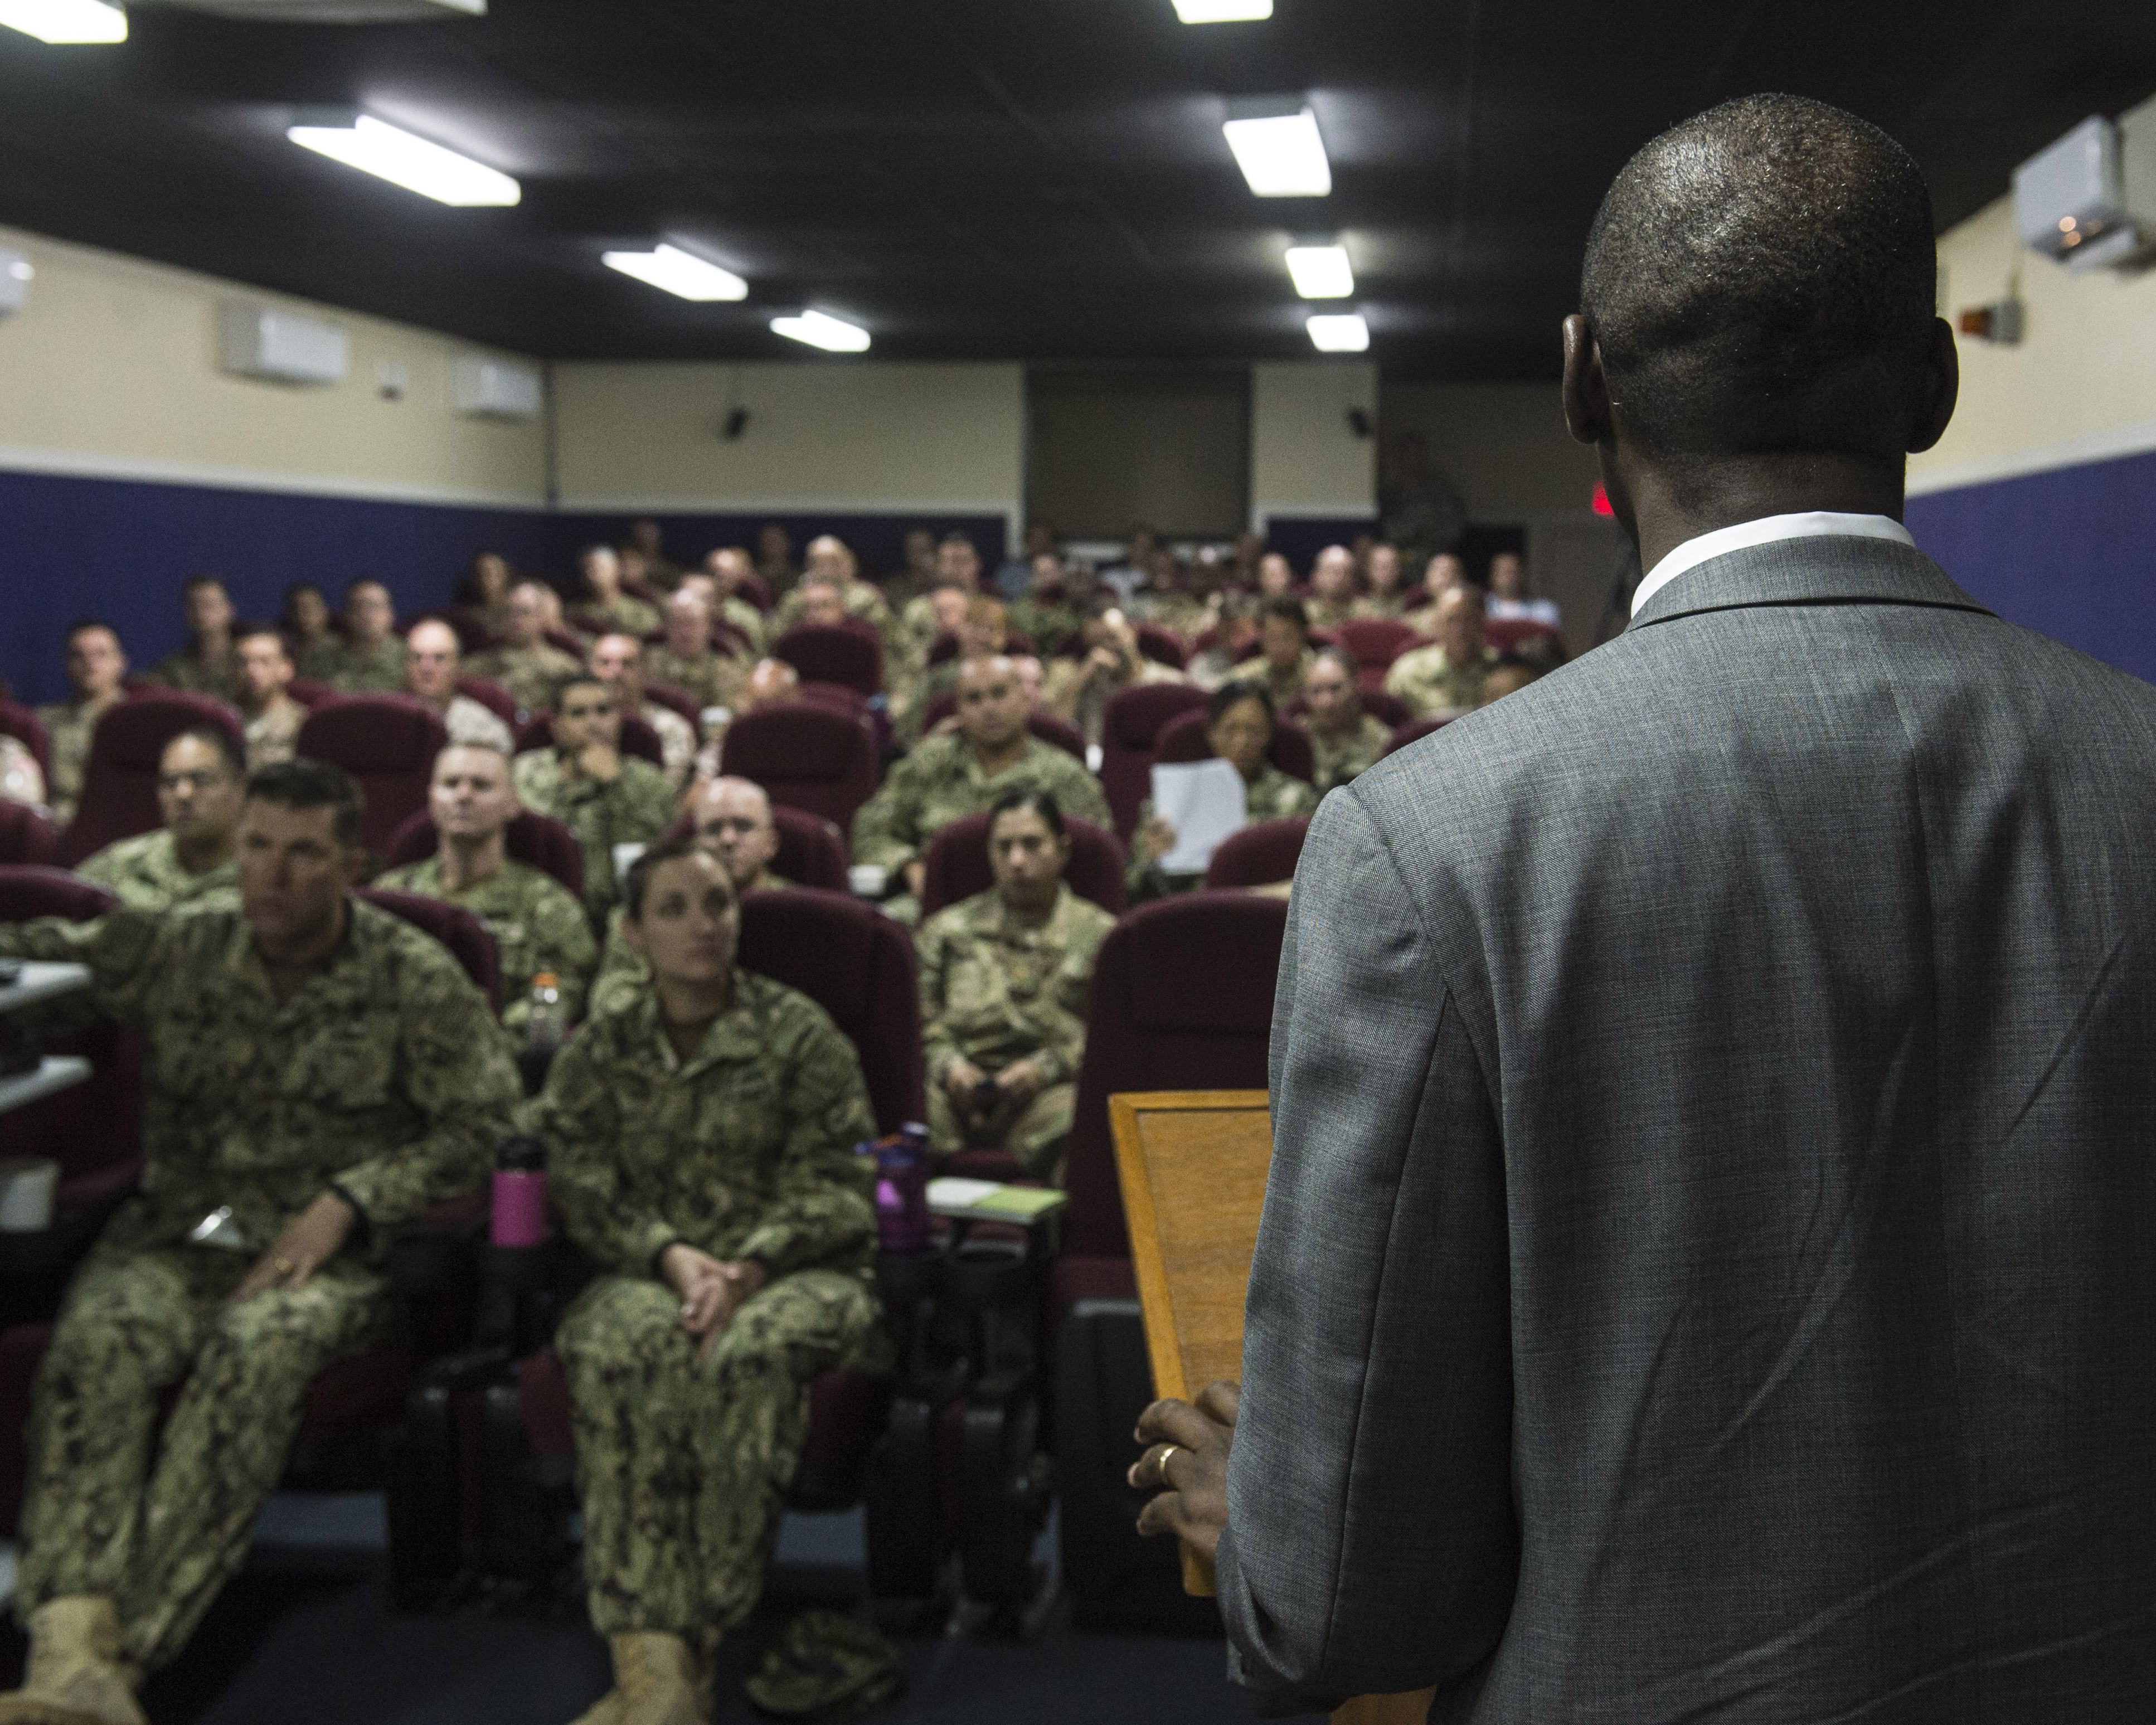 Dr. Raymond Gilpin, Africa Center for Strategic Studies academic dean, discusses African contemporary security trends Mar. 1, 2016, at Camp Lemonnier, Djibouti. The Africa Center for Strategic Studies is a Department of Defense organization dedicated to supporting U.S. foreign and security policies. Combined Joint Task Force-Horn of Africa hosted the ACSS to discuss current issues and to learn more about the countries in East Africa. (U.S. Air Force photo by Staff Sgt. Peter Thompson)